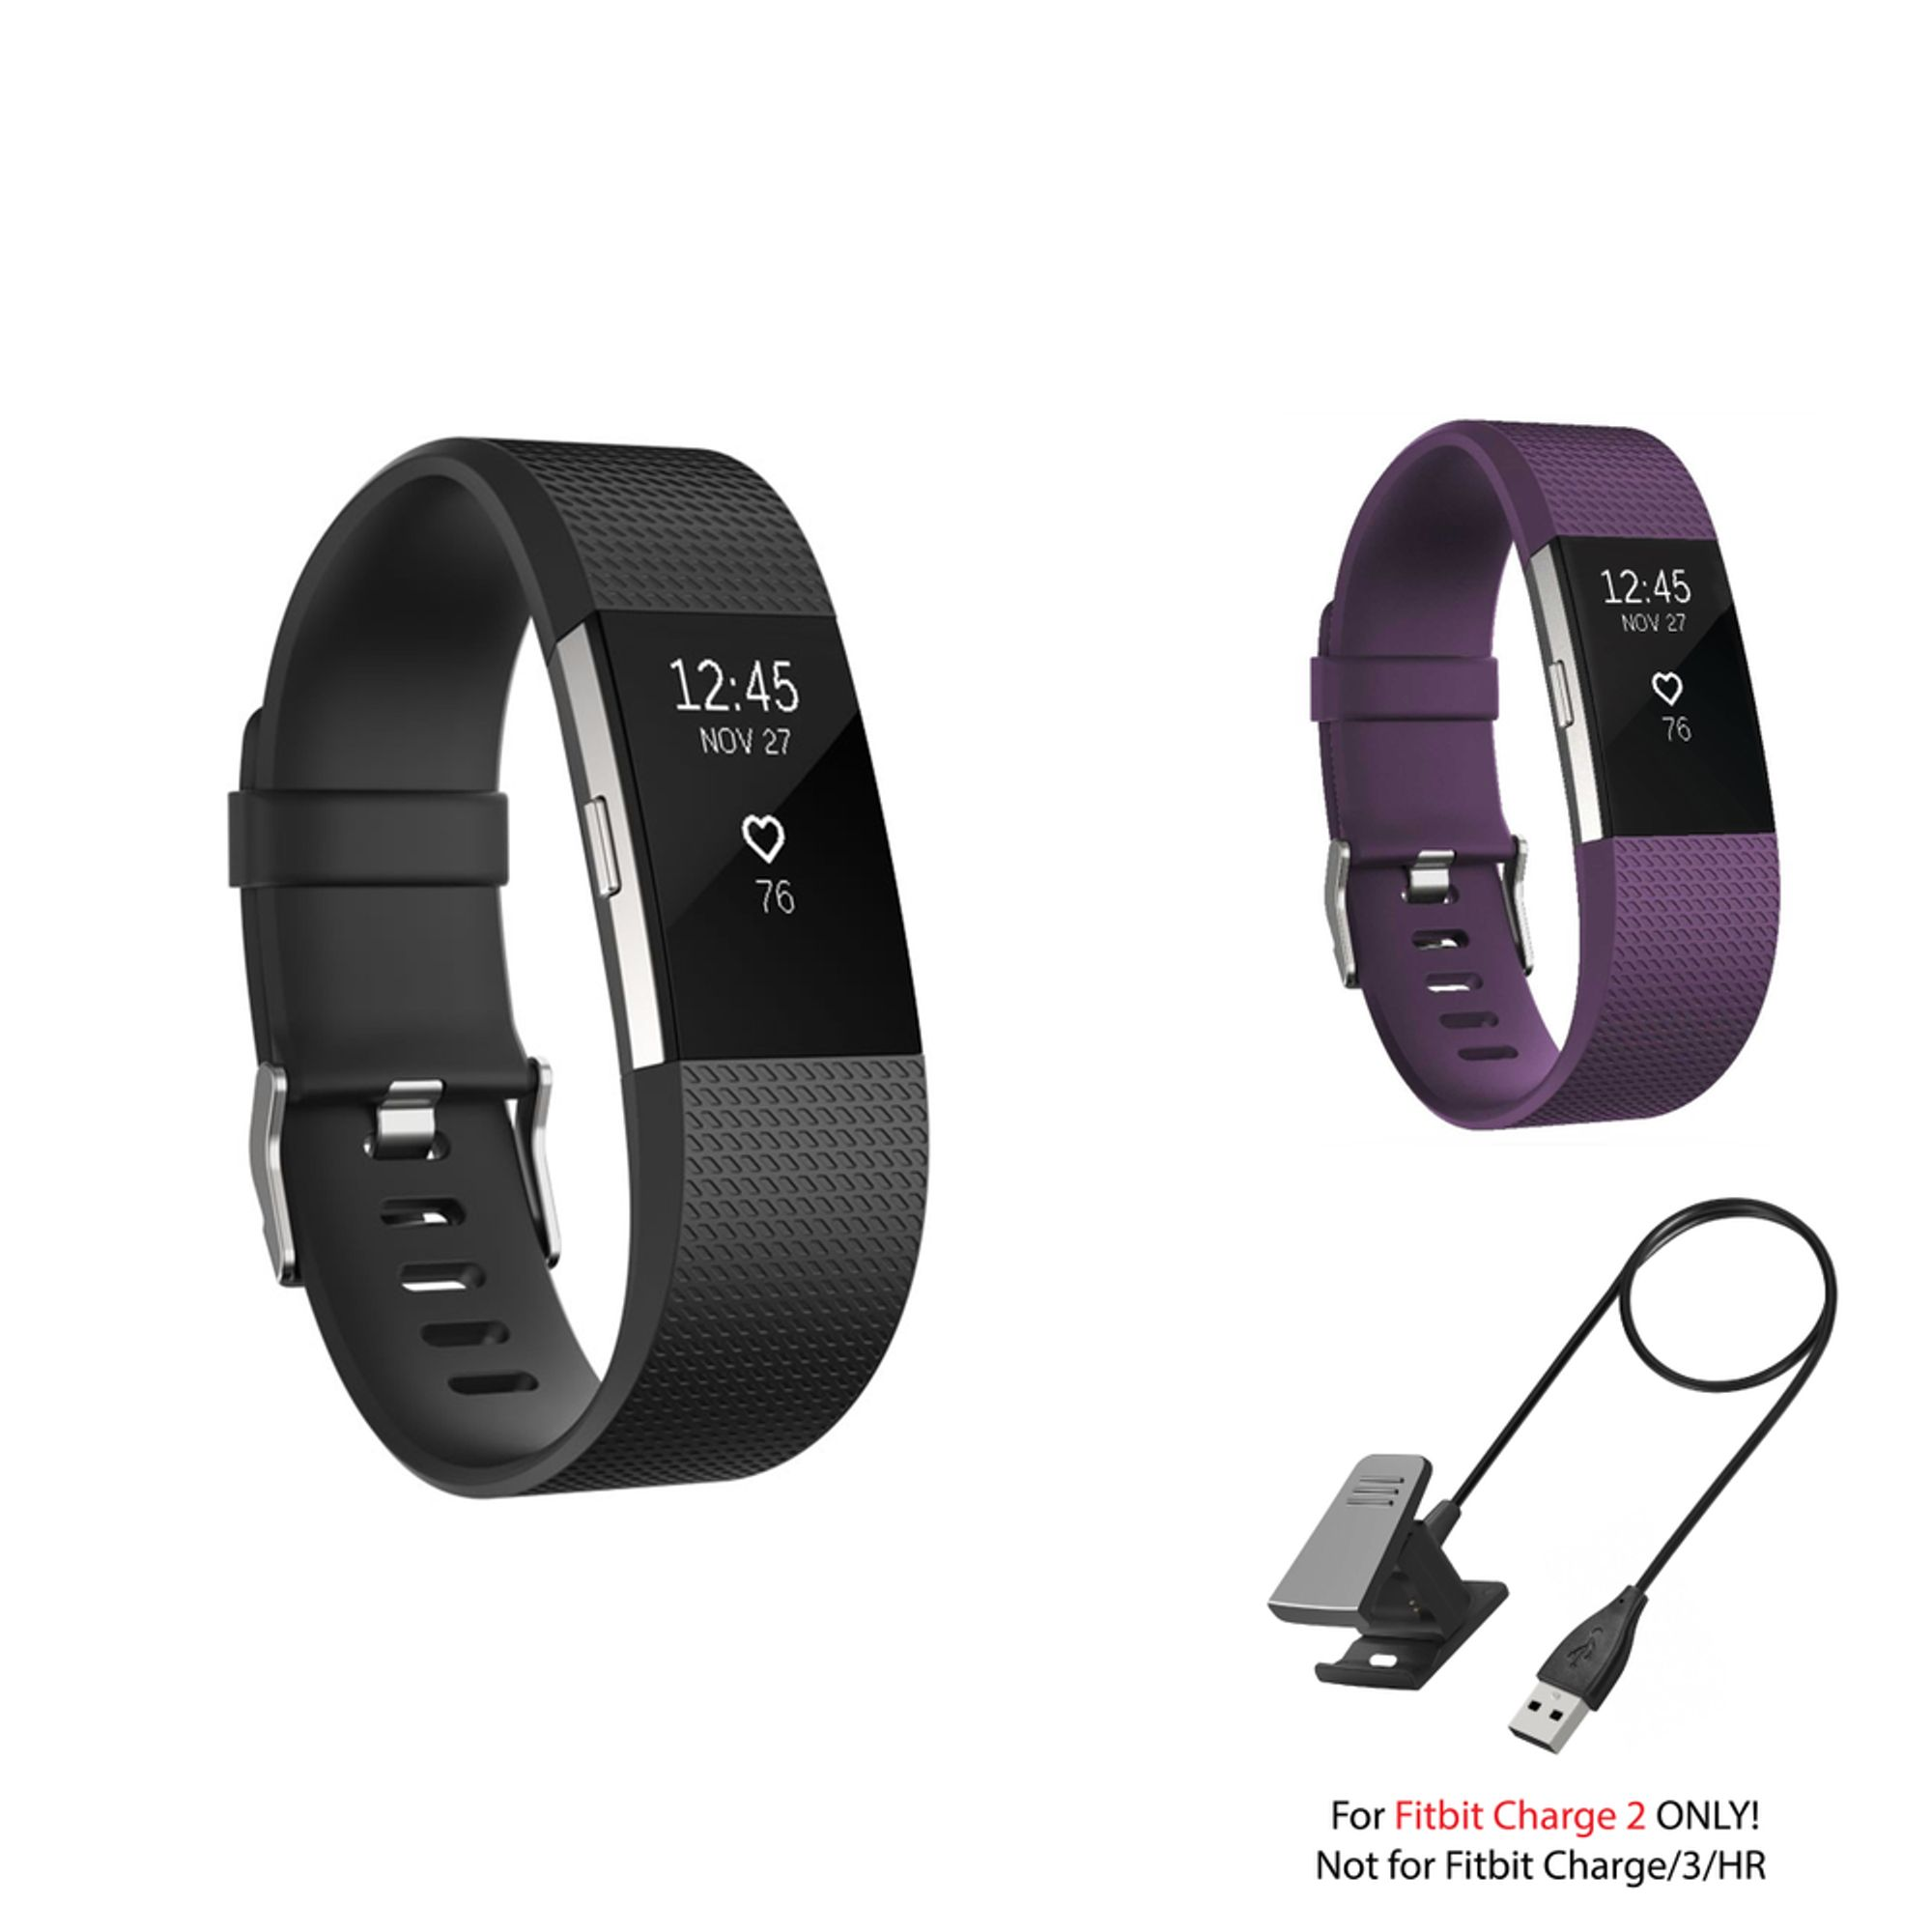 Fitbit Charge 2 Bands and Fitbit Charge 2 Charger by Zodaca 2 pack (Black & Purple) Replacement Bands Rubber Wristband Fashion Sport Strap with Metal Buckle and USB Charging Cable for Fitbit Charge 2